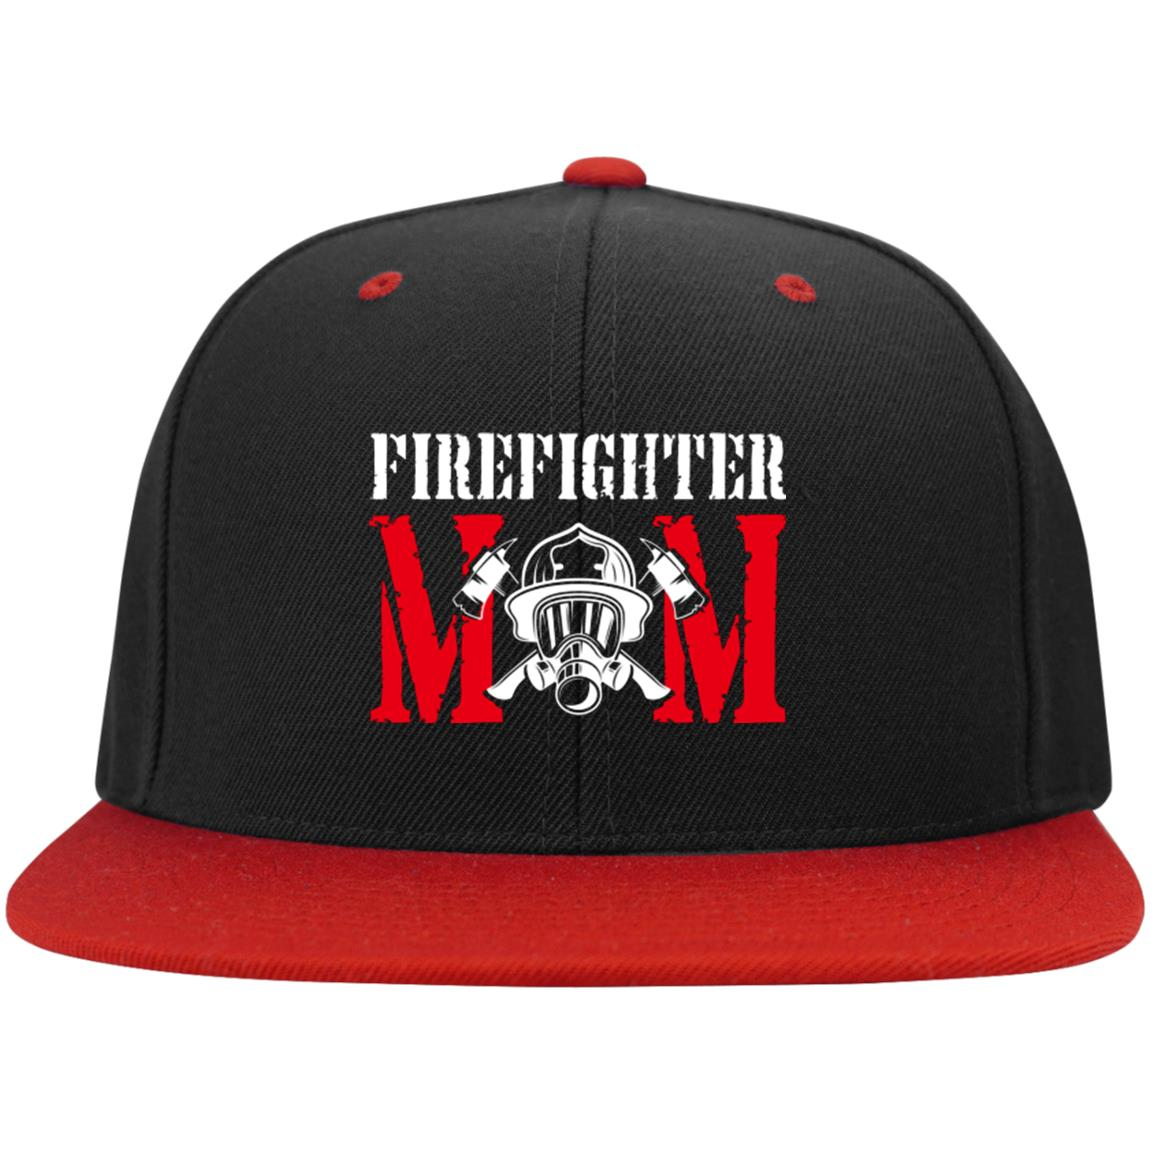 Firefighter Mom Snapback Hat